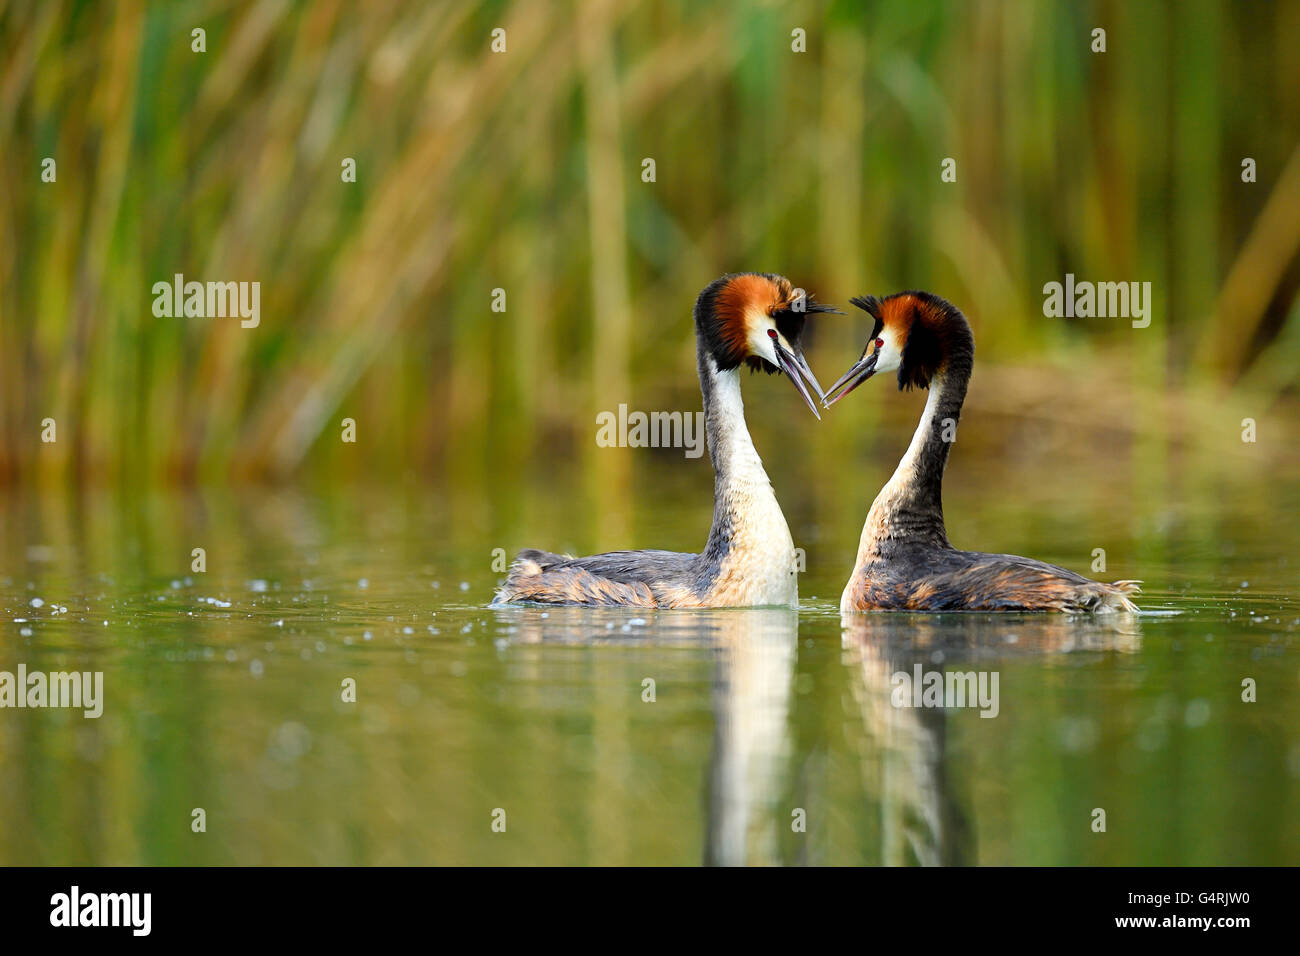 Great crested grebes (Podiceps cristatus), pair during courtship, Lake Lucerne, Canton of Lucerne, Switzerland Stock Photo